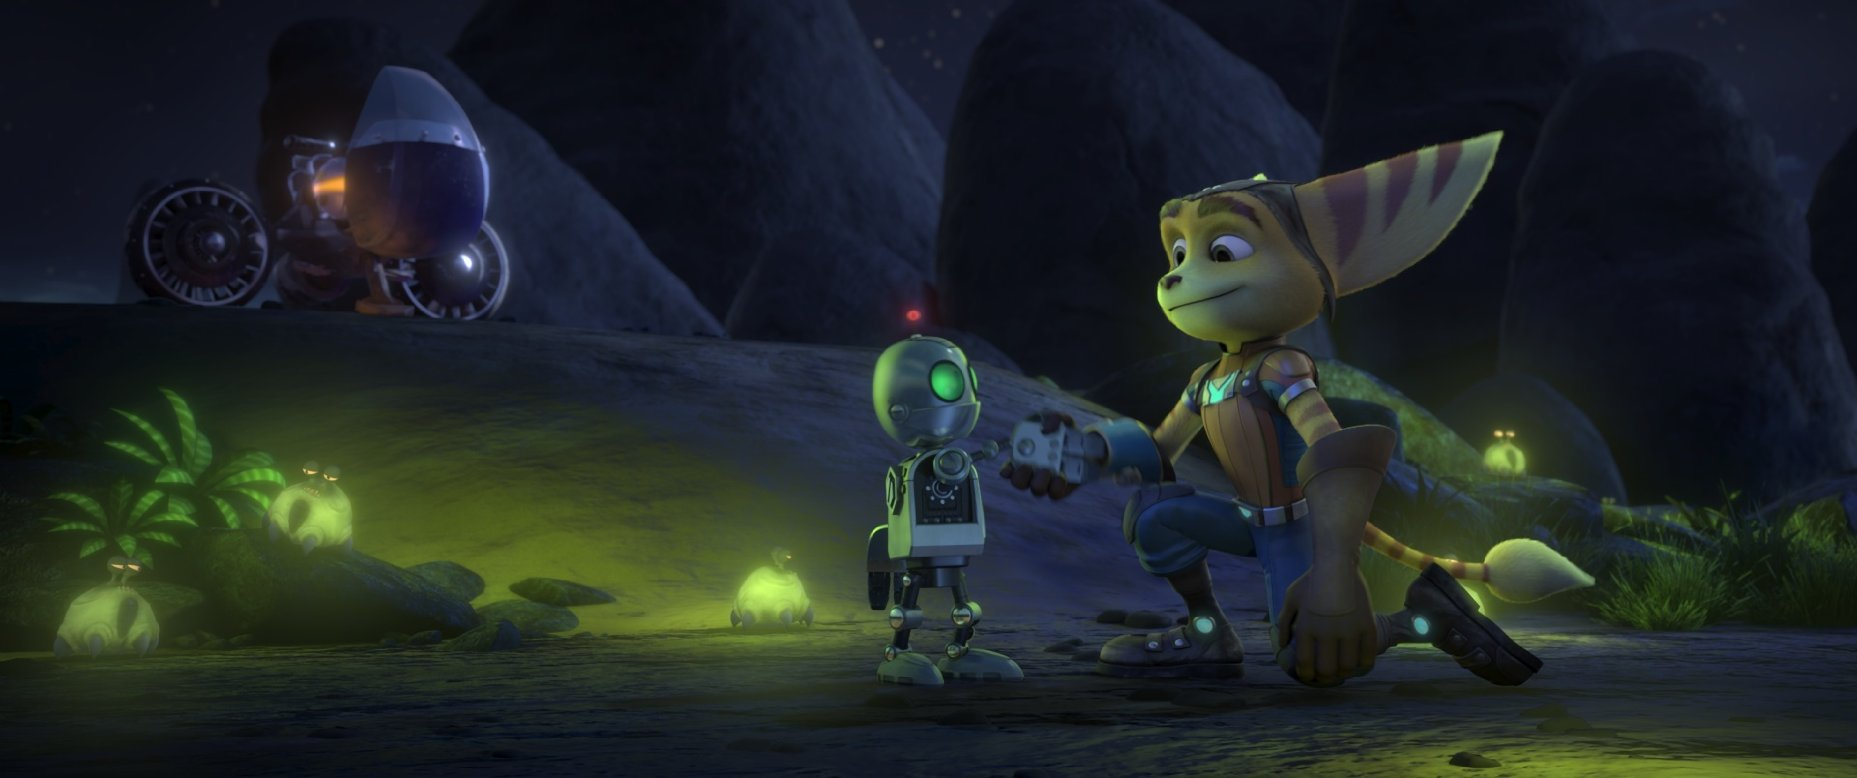 ratchet and clank filme ana pn 1